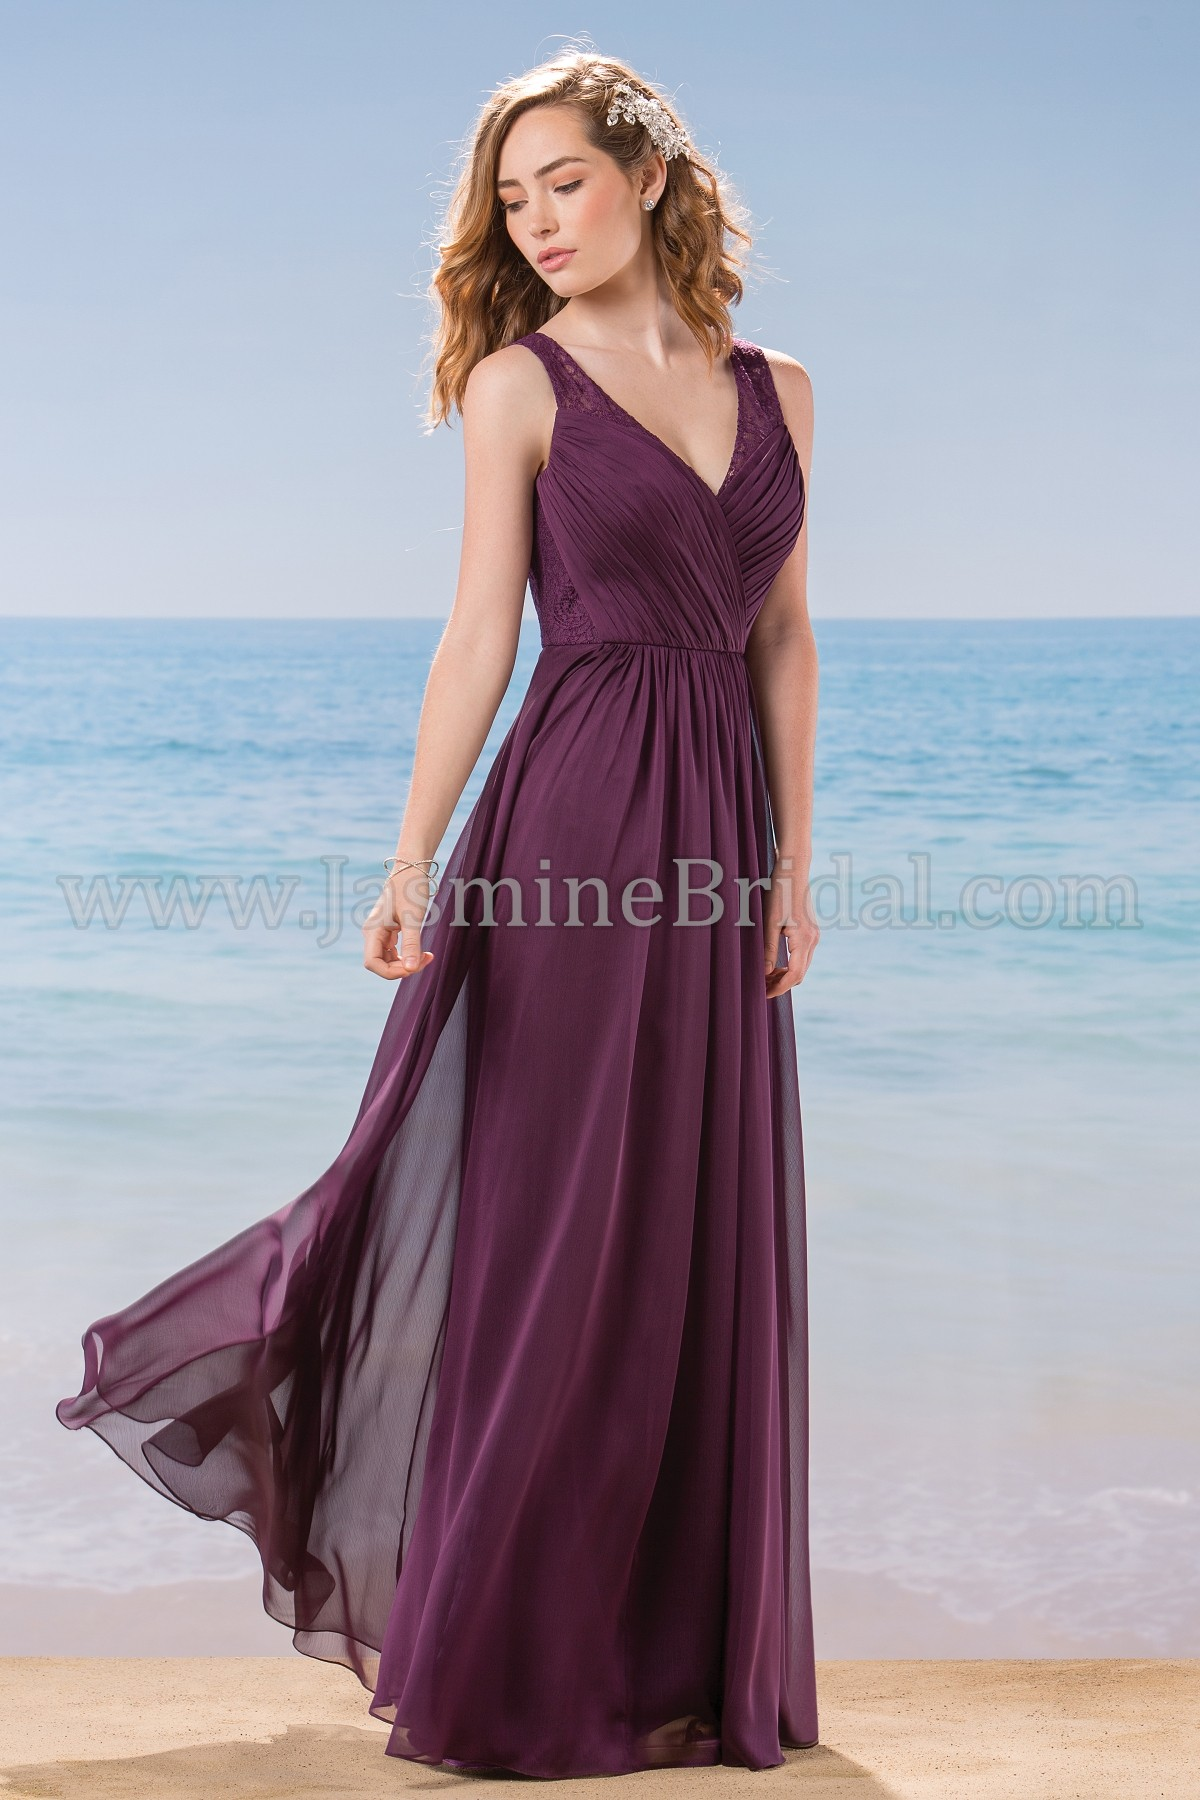 L184016 Long V-neck Belsoie Tiffany Chiffon & Lace Bridesmaid Dress